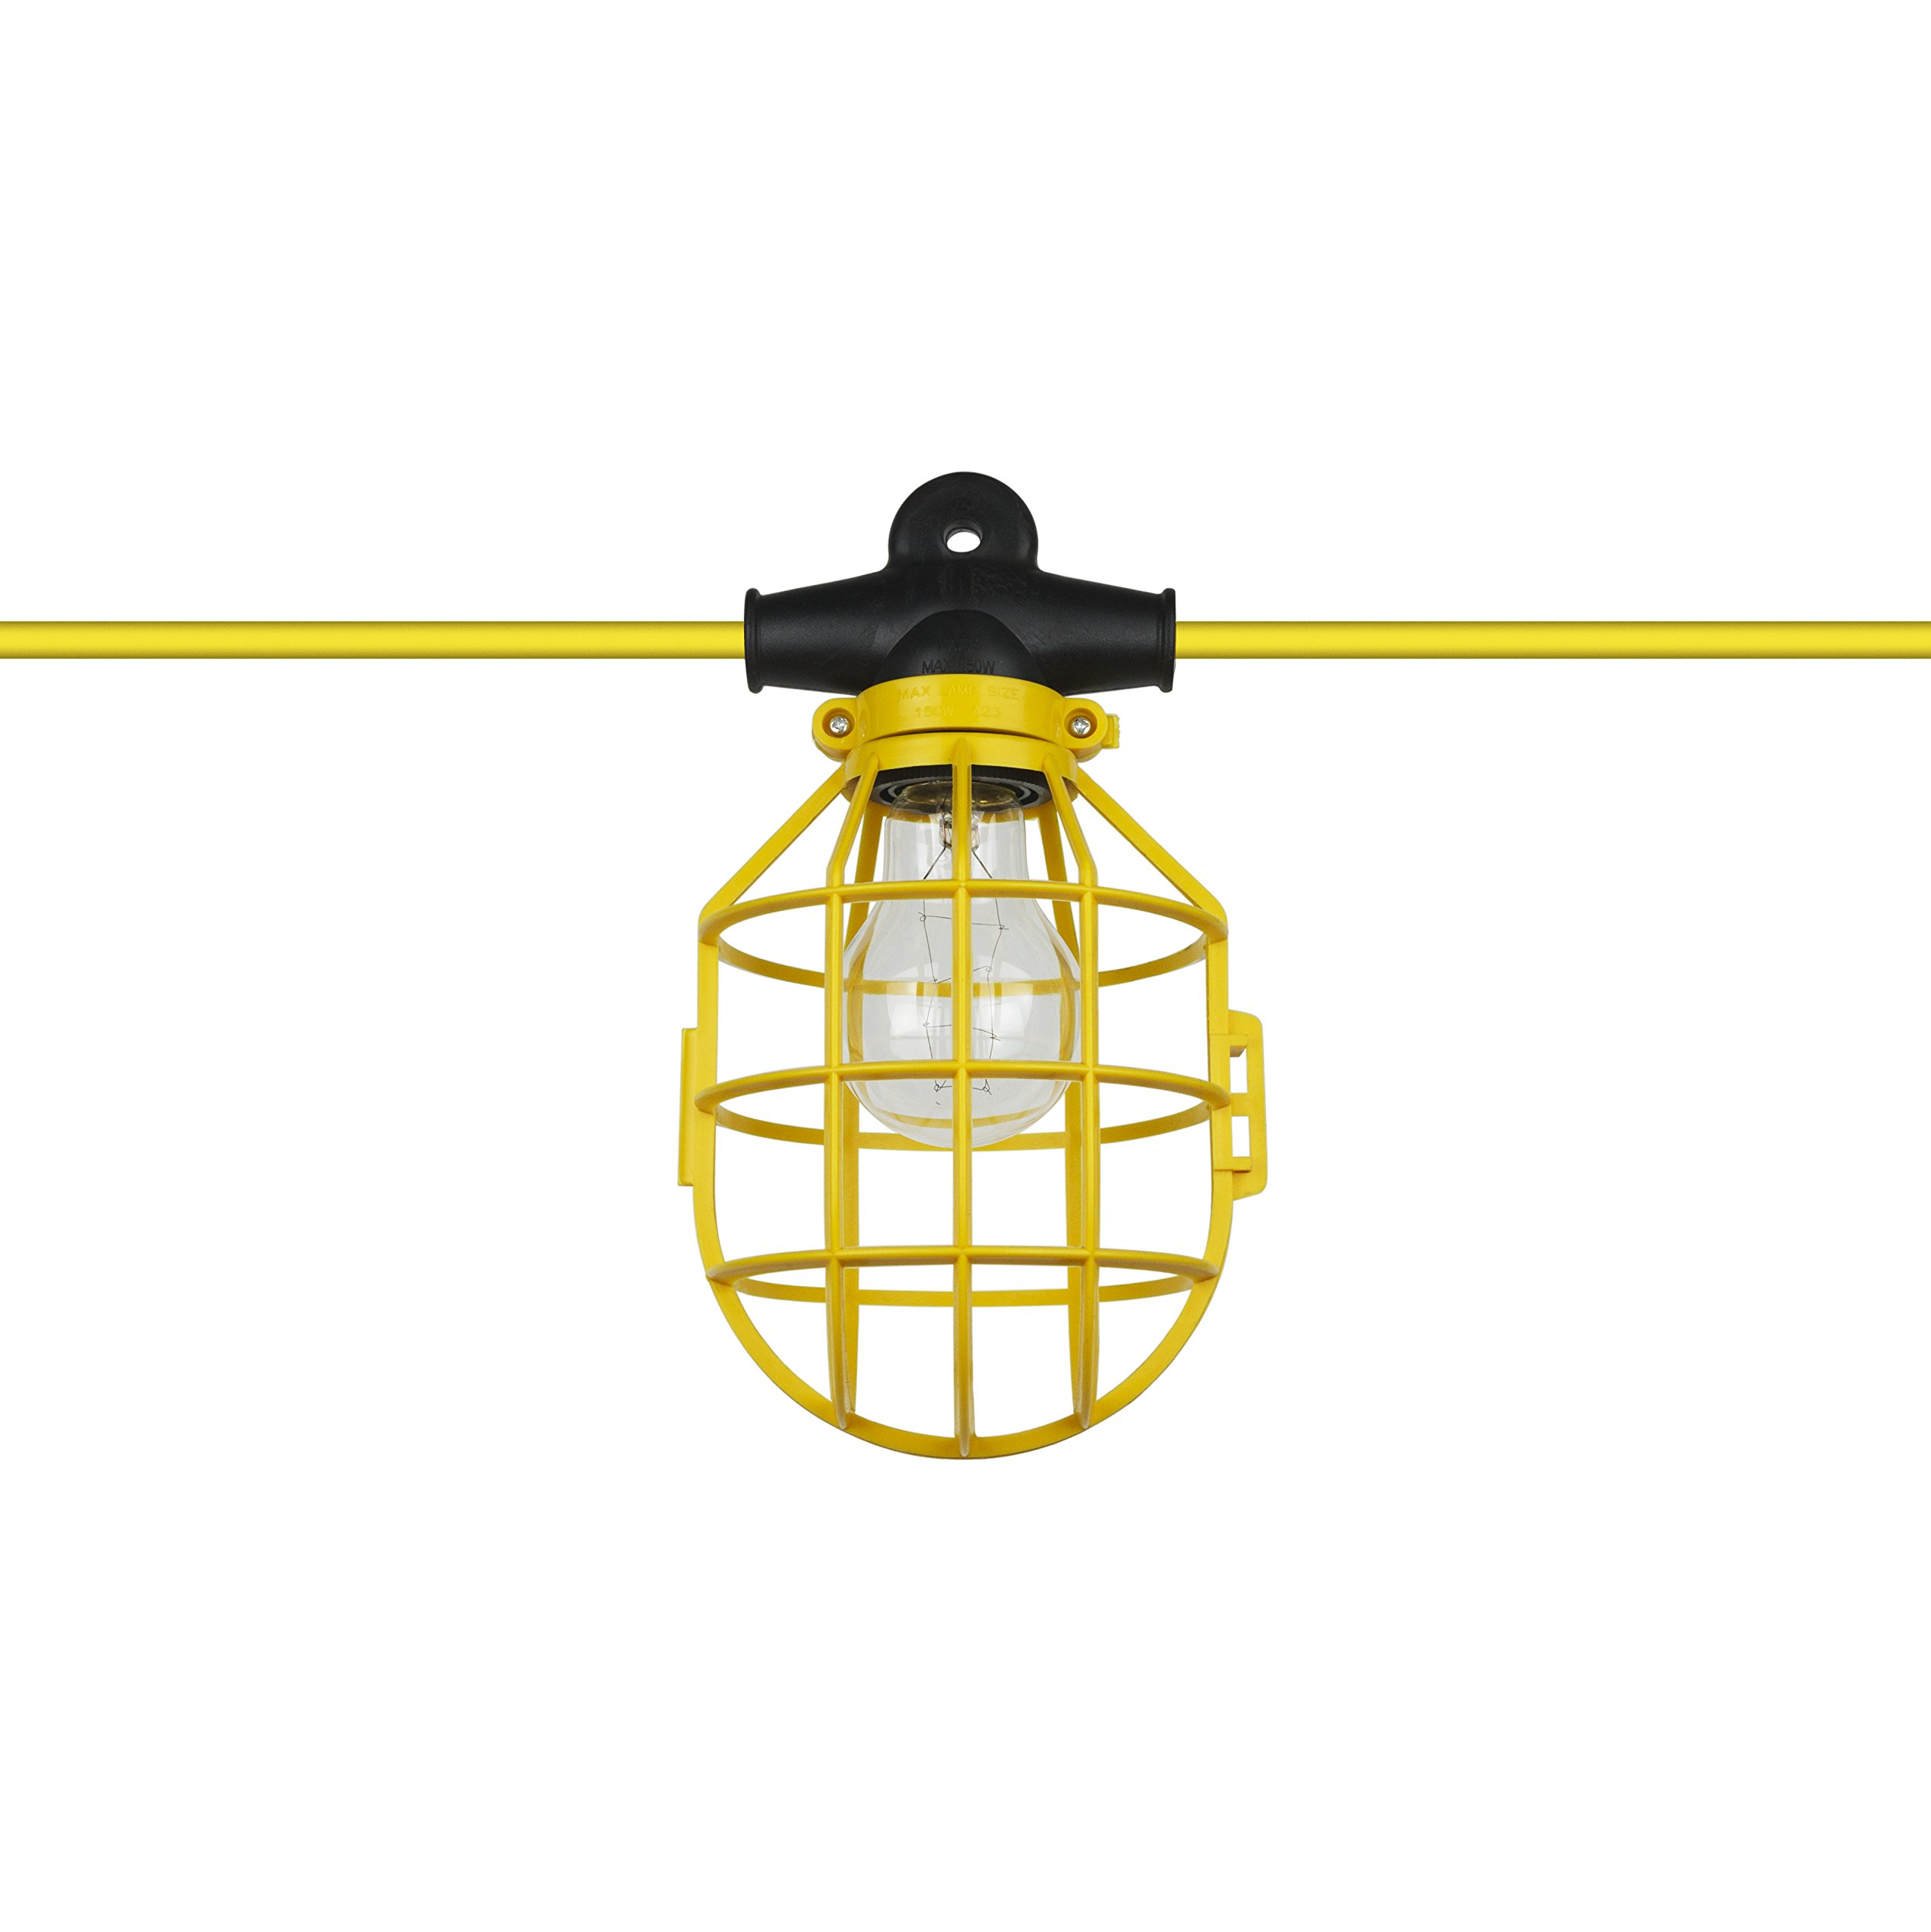 Sunlite EX50-14/2/SL 50 foot 5 bulb Incandescent Temporary Portable String Work Light Lighting, Yellow by Sunlite (Image #1)